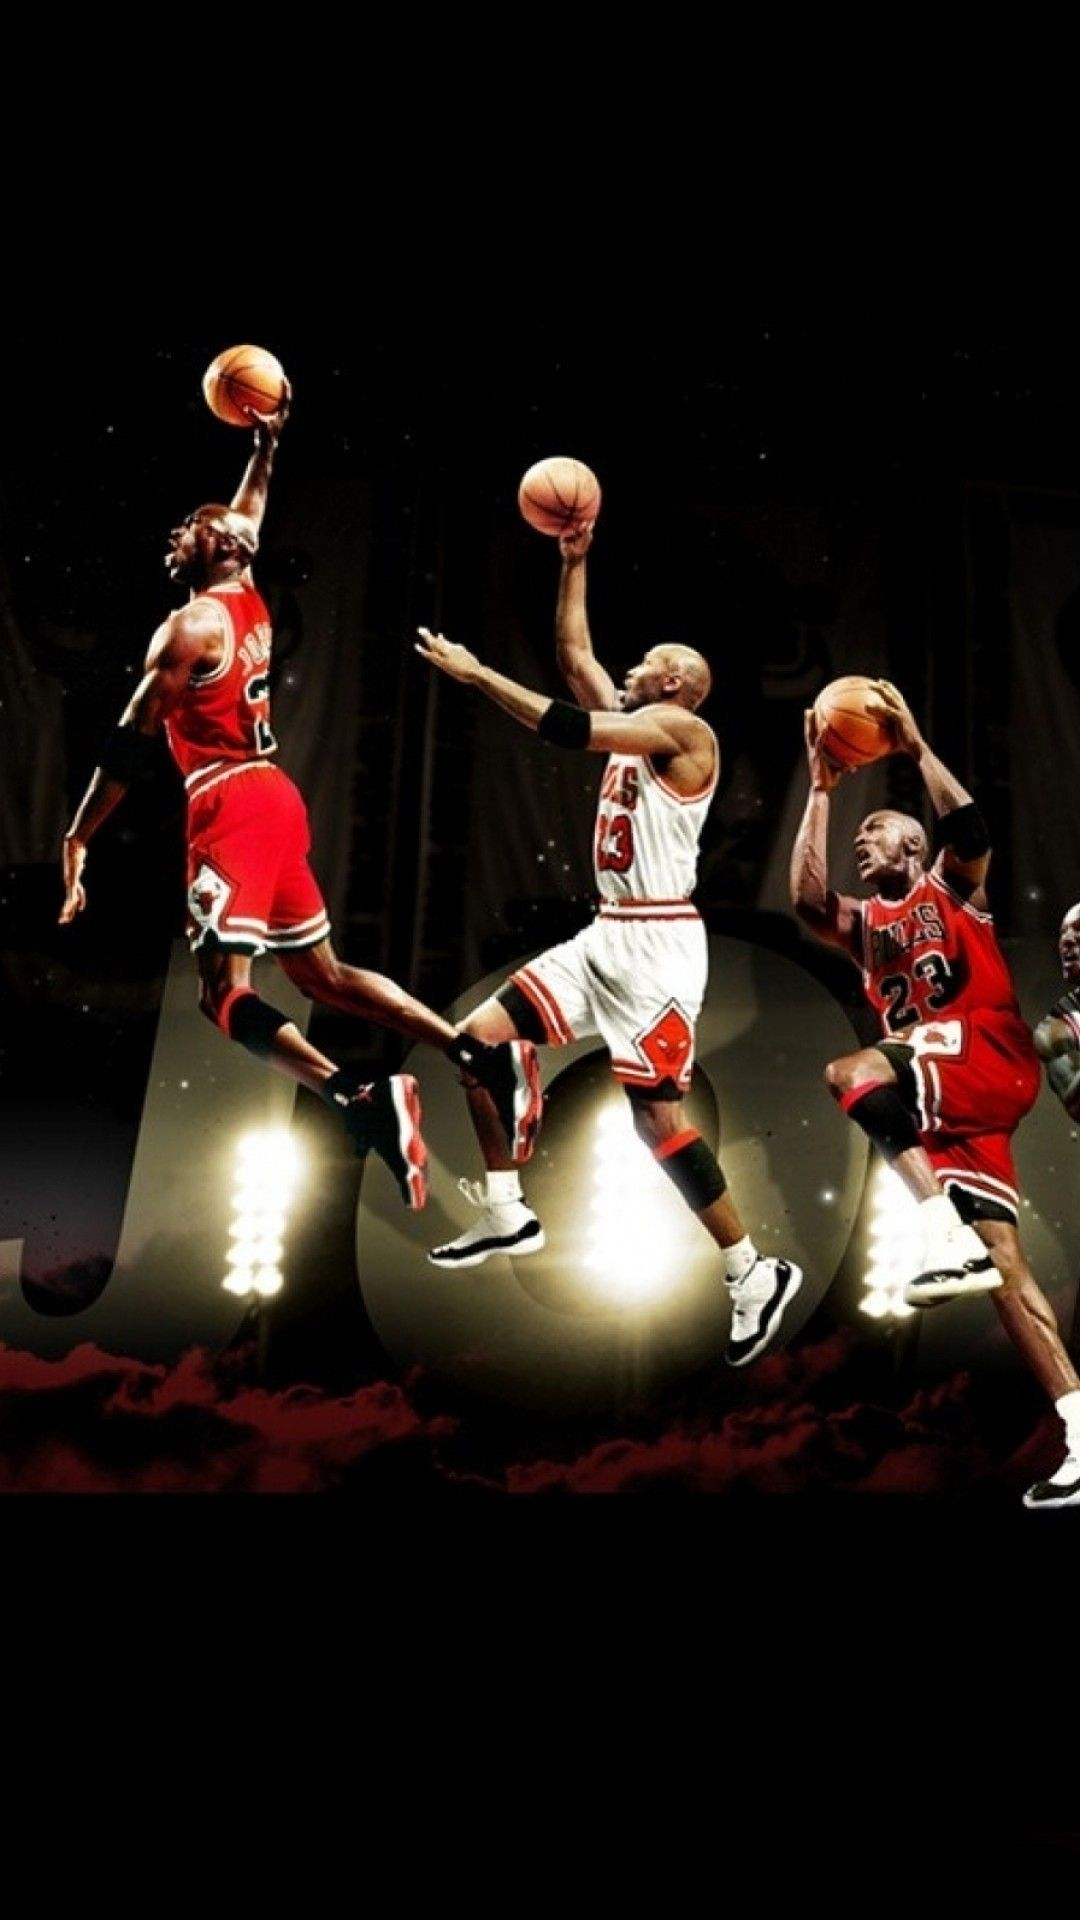 Pin by willjd on Sports Sports wallpapers, Michael